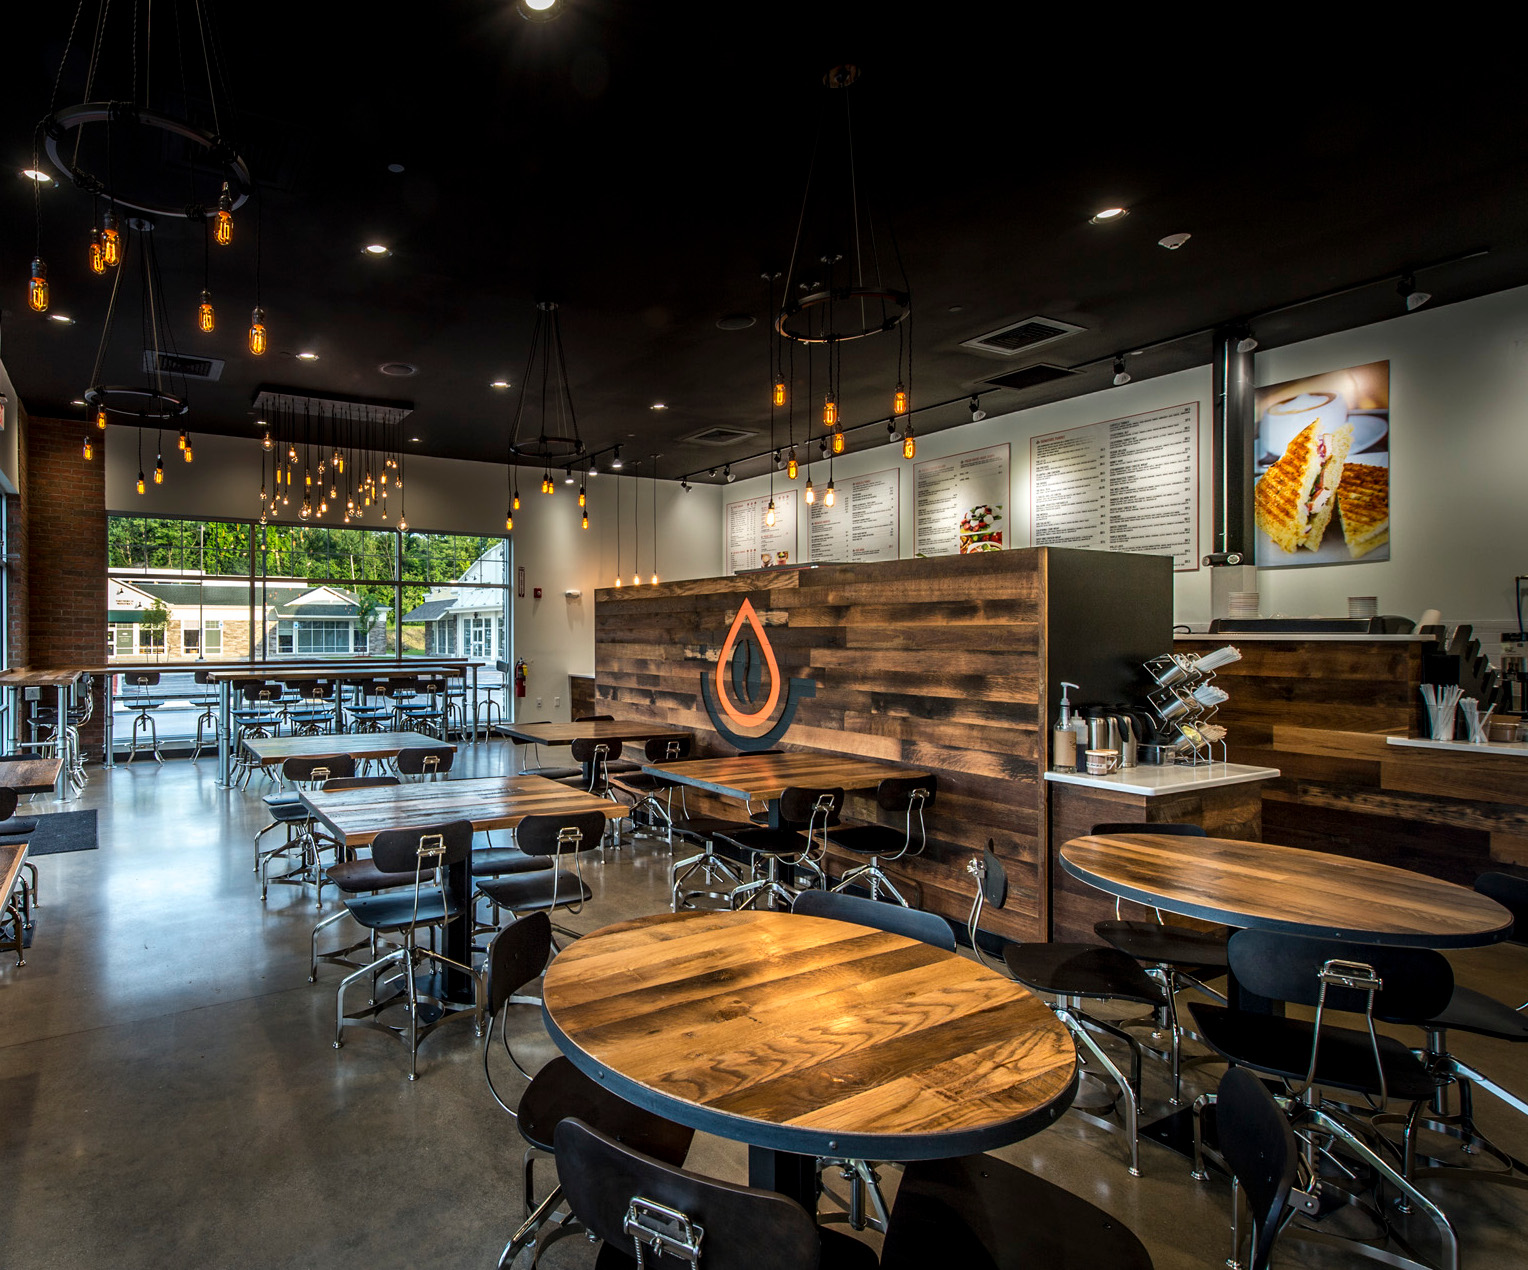 Inlayed within a wall of reclaimed mixed Settlers Plank hardwoods, the Pressed Cafe orange and black logo serves as focal point and separation of the ordering area from the dining space.